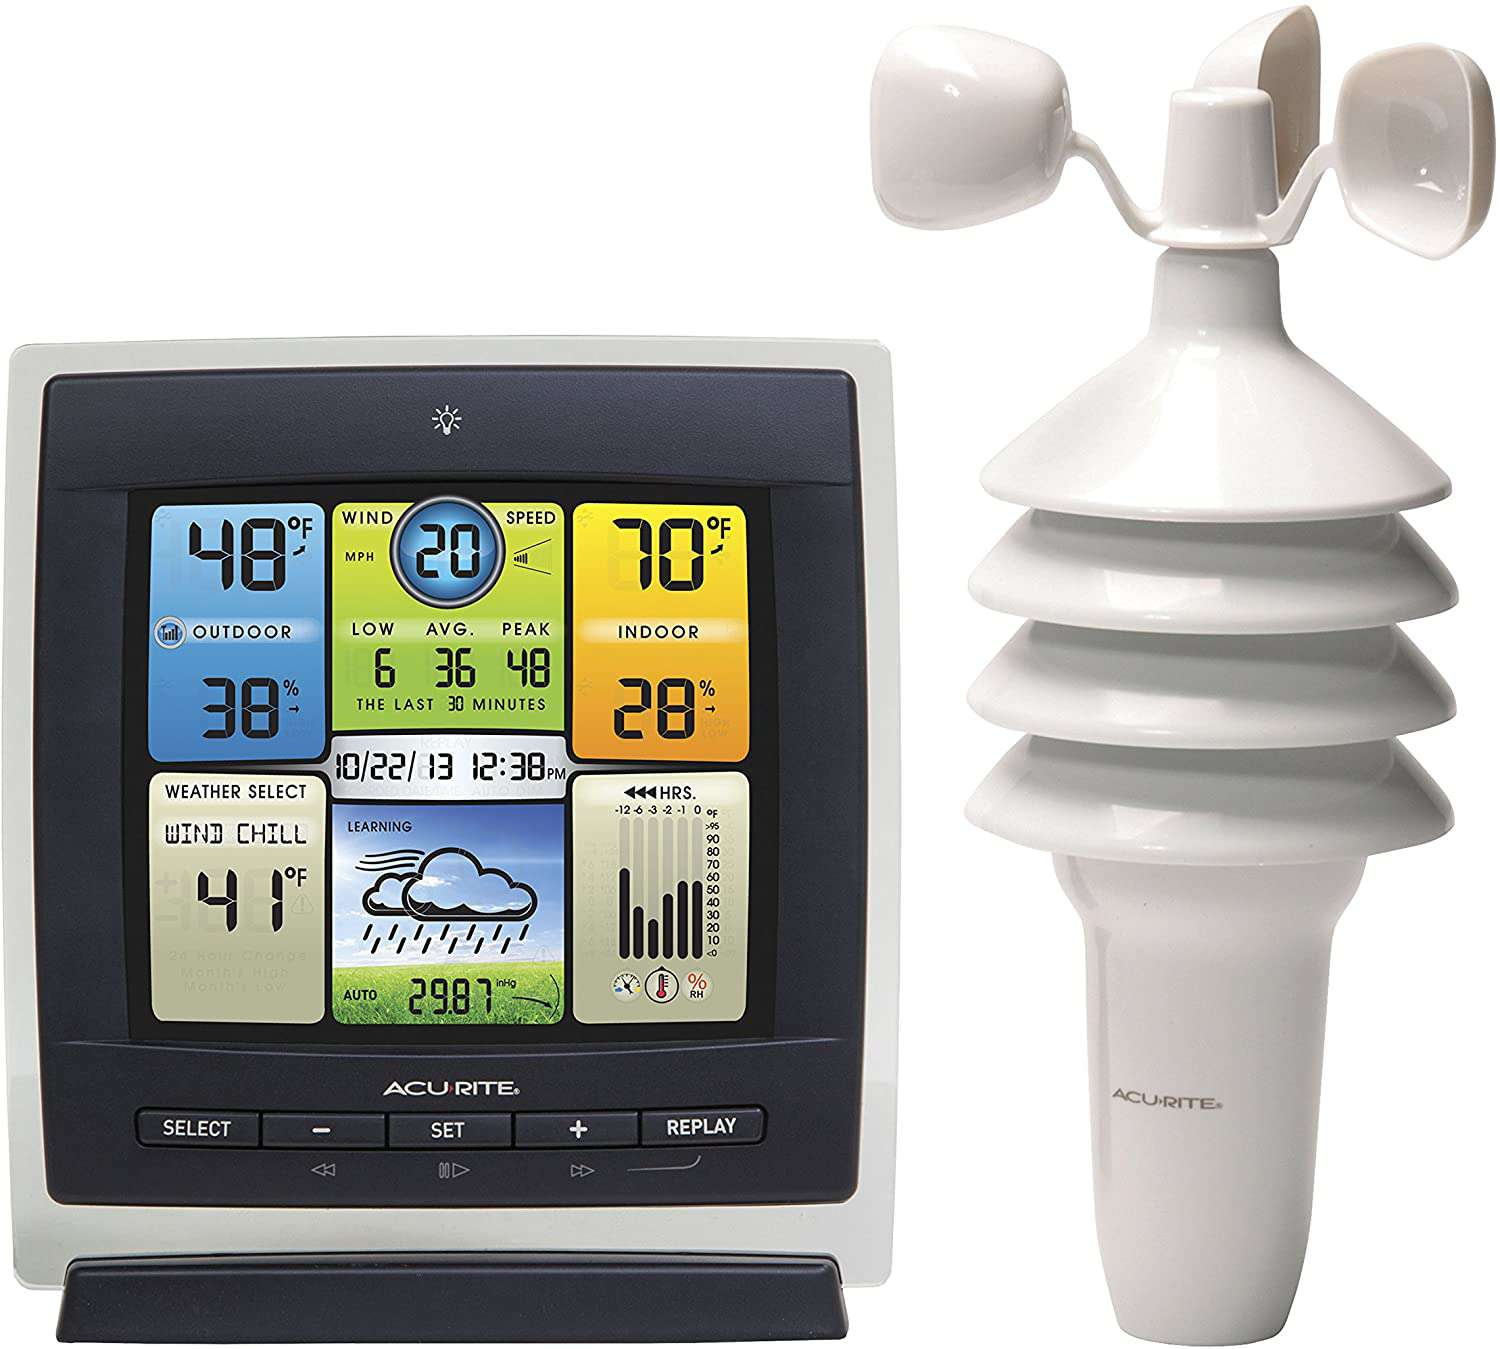 The AcuRite Notos 3-in1 Weather Station will tell you the weater.